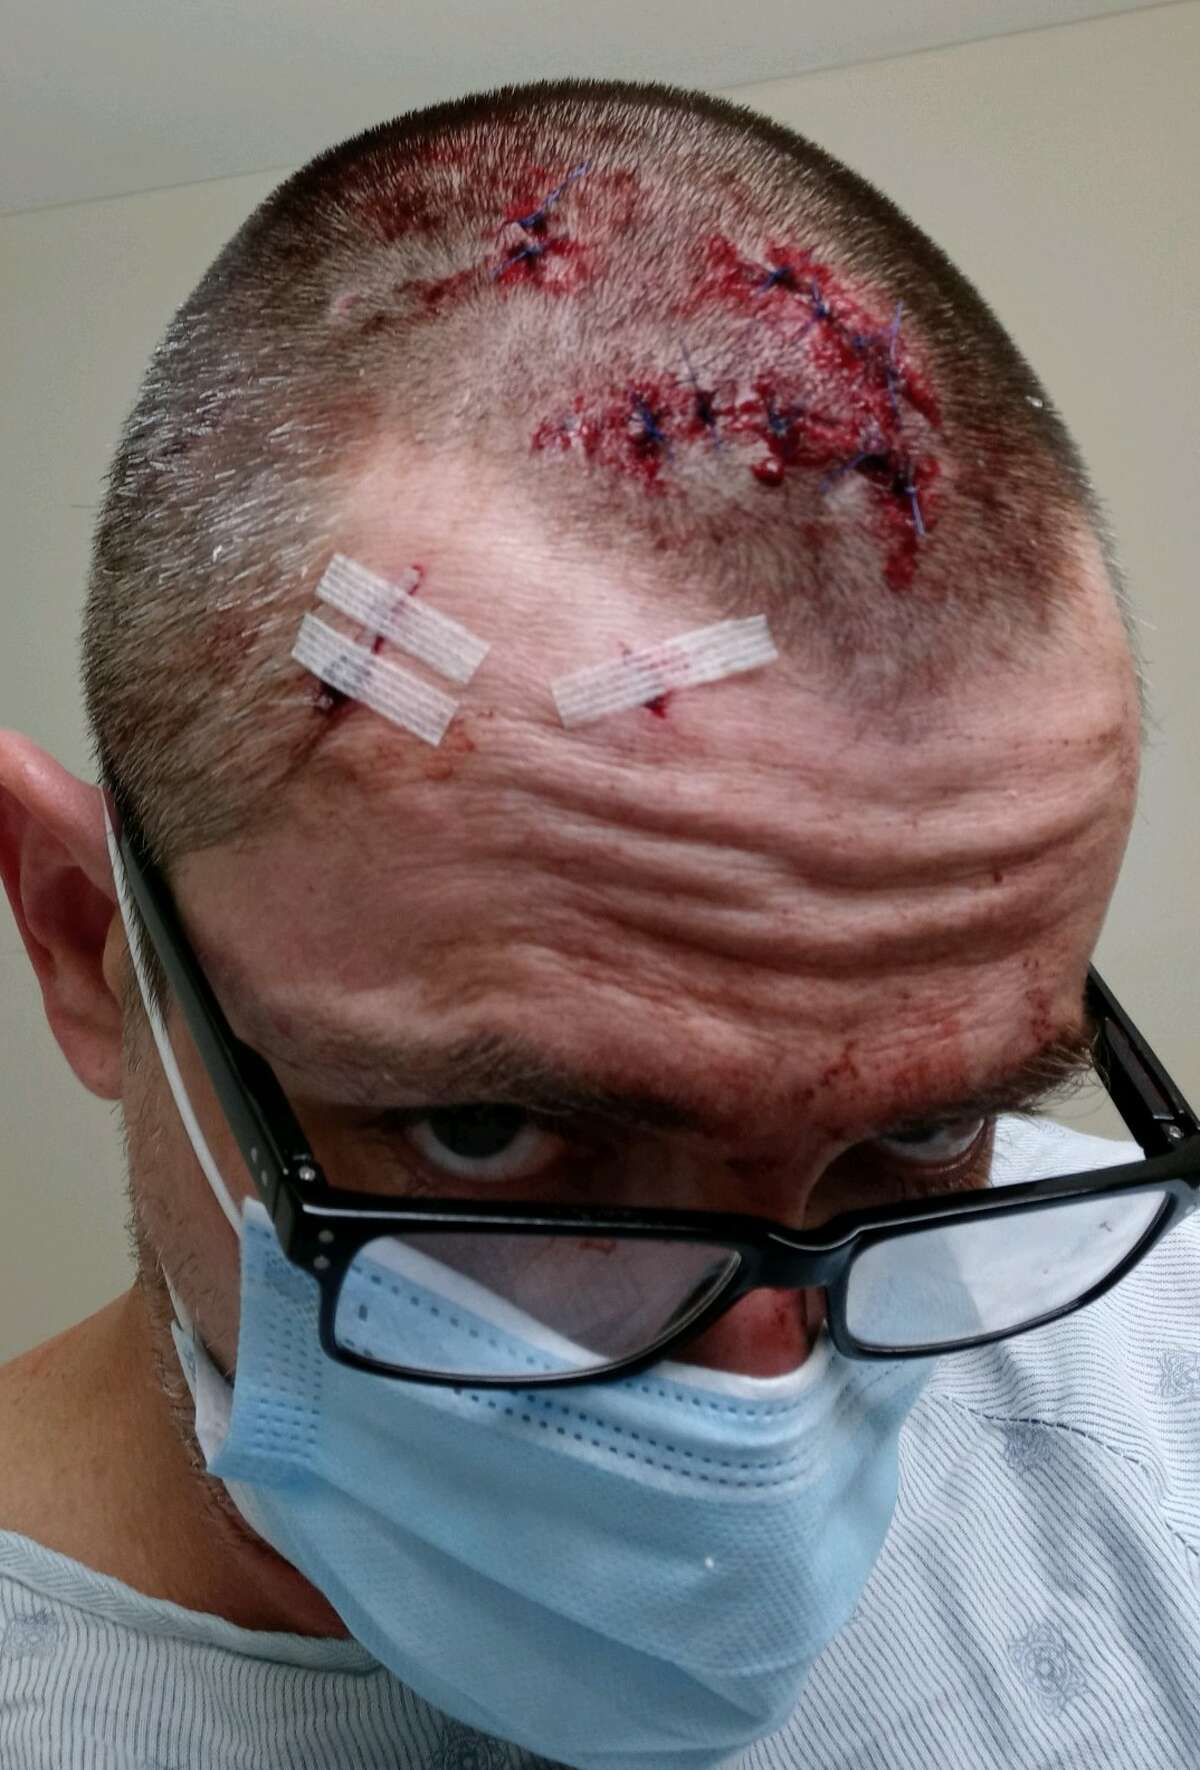 An employee at Grand Prize Bar in Houston had to get ten stitches after being attacked by a customer.